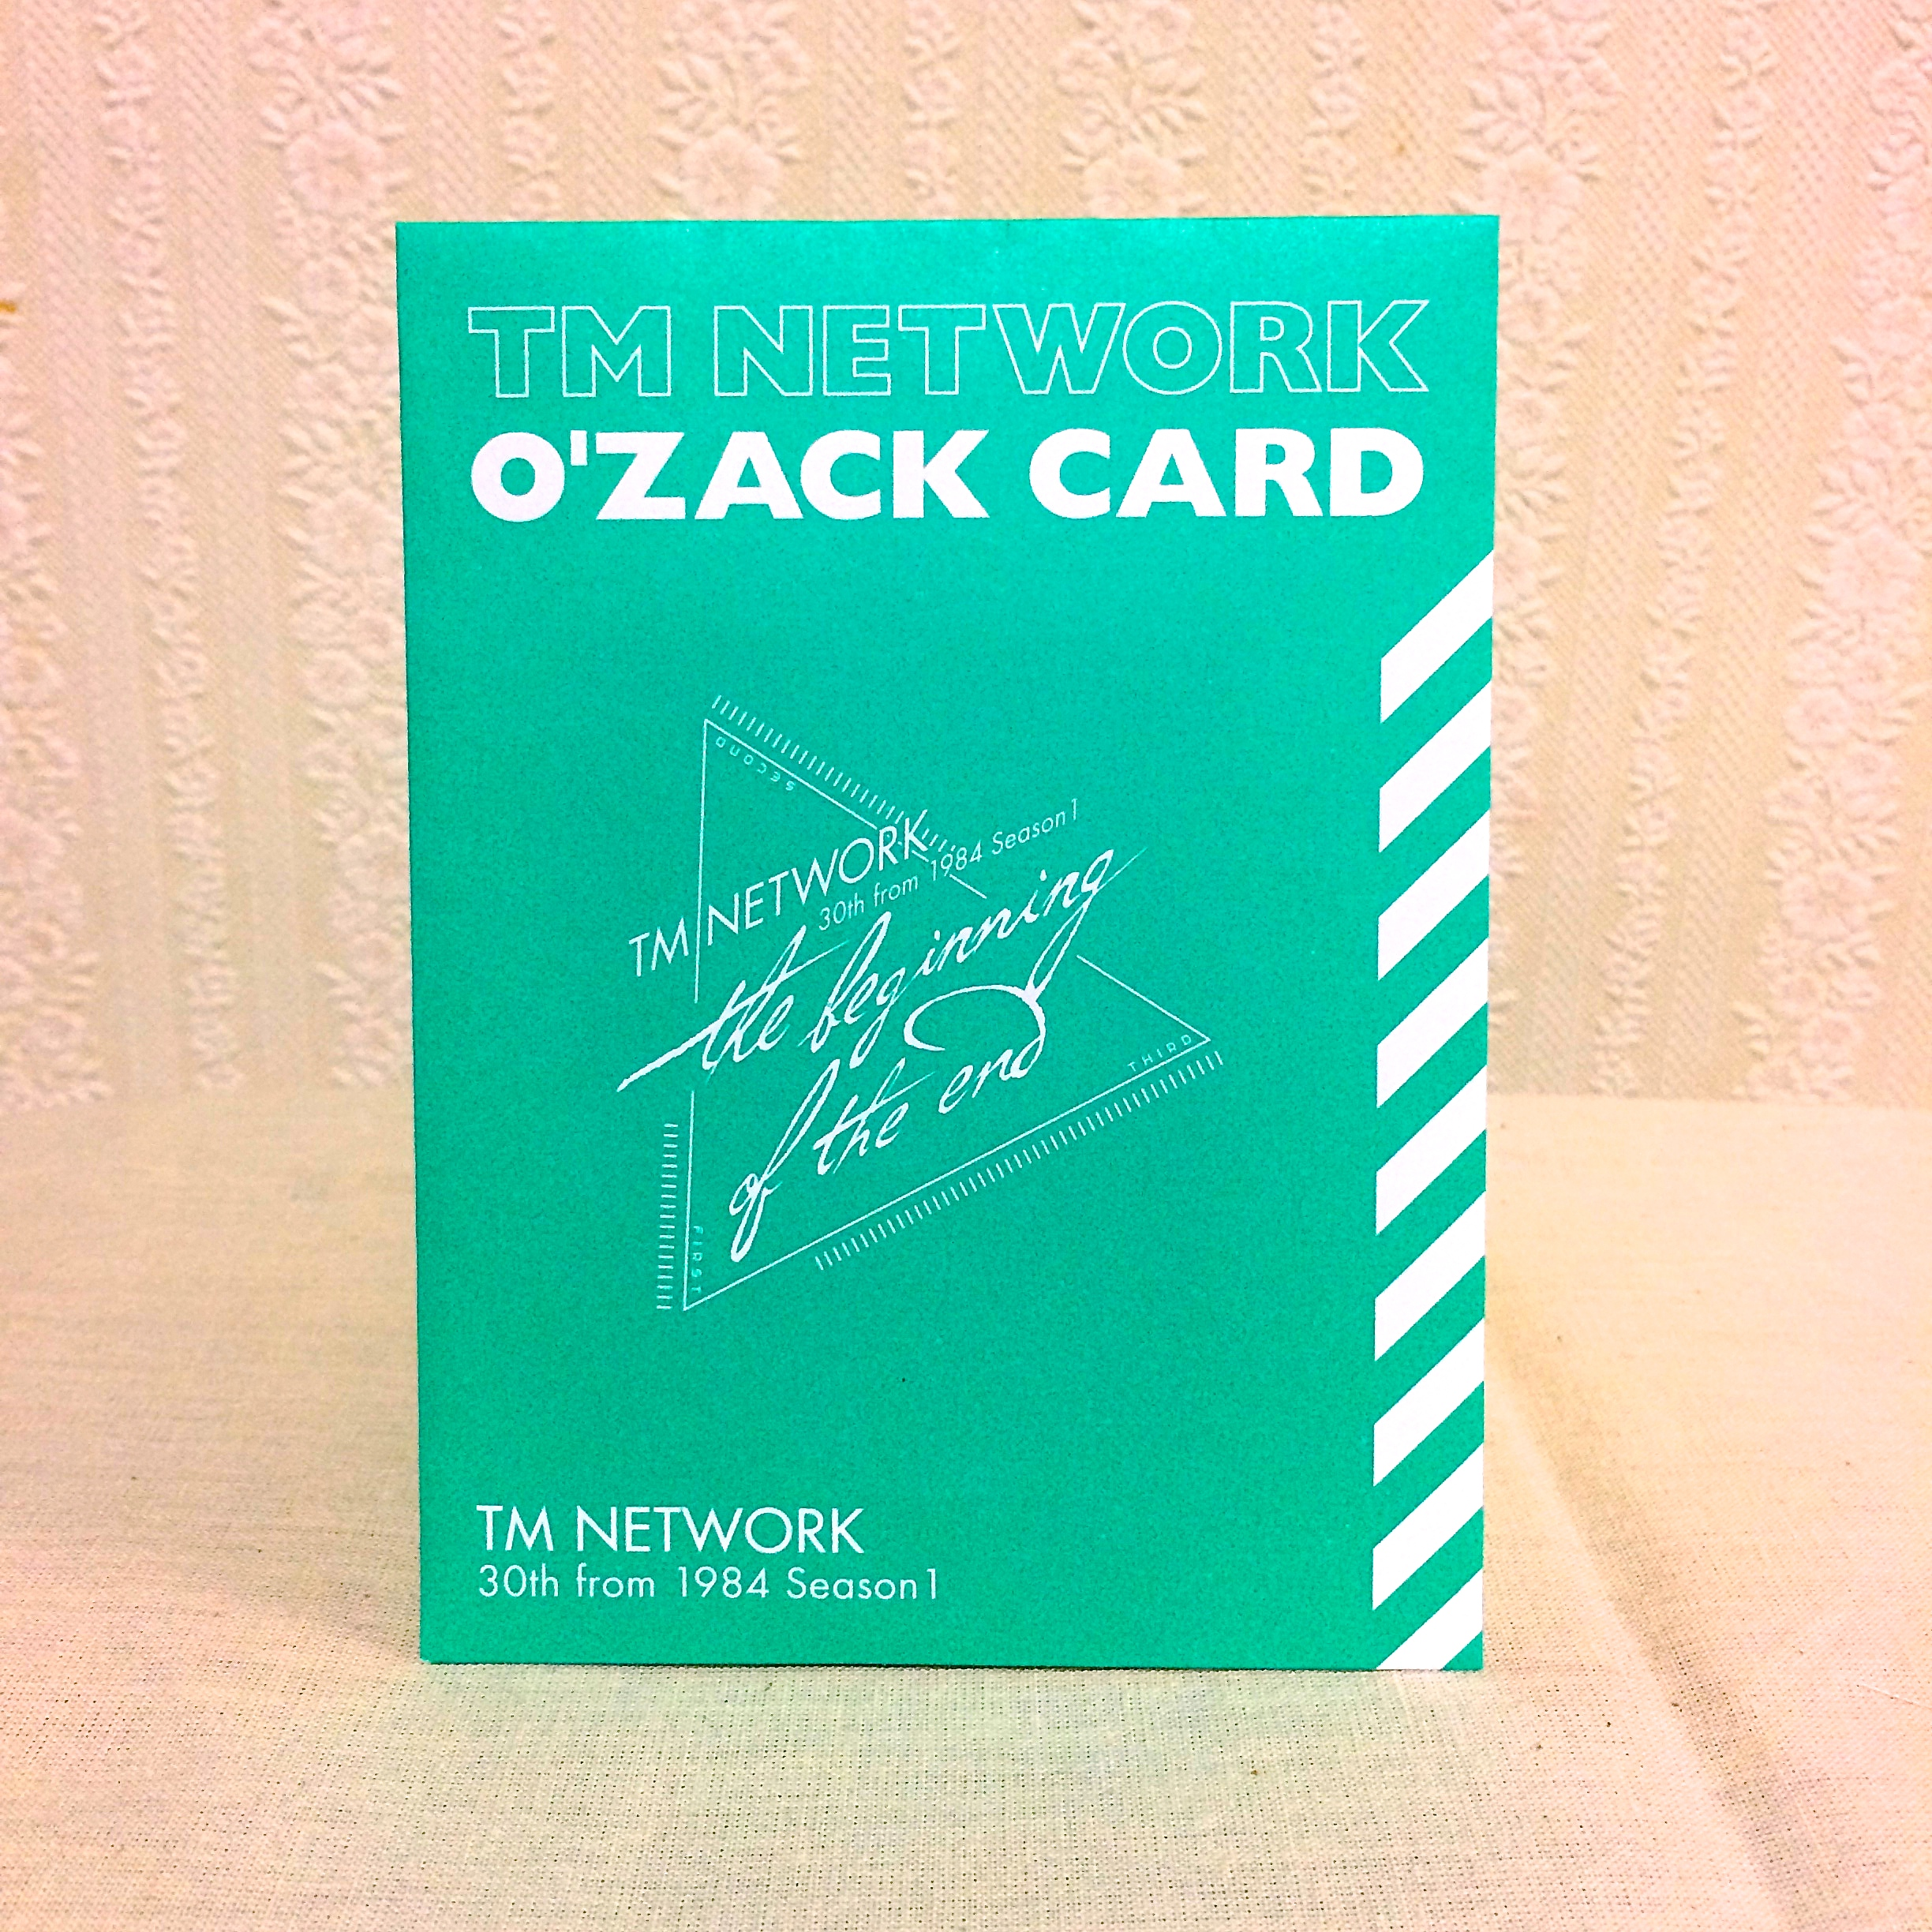 TM NETWORK O'zack Card